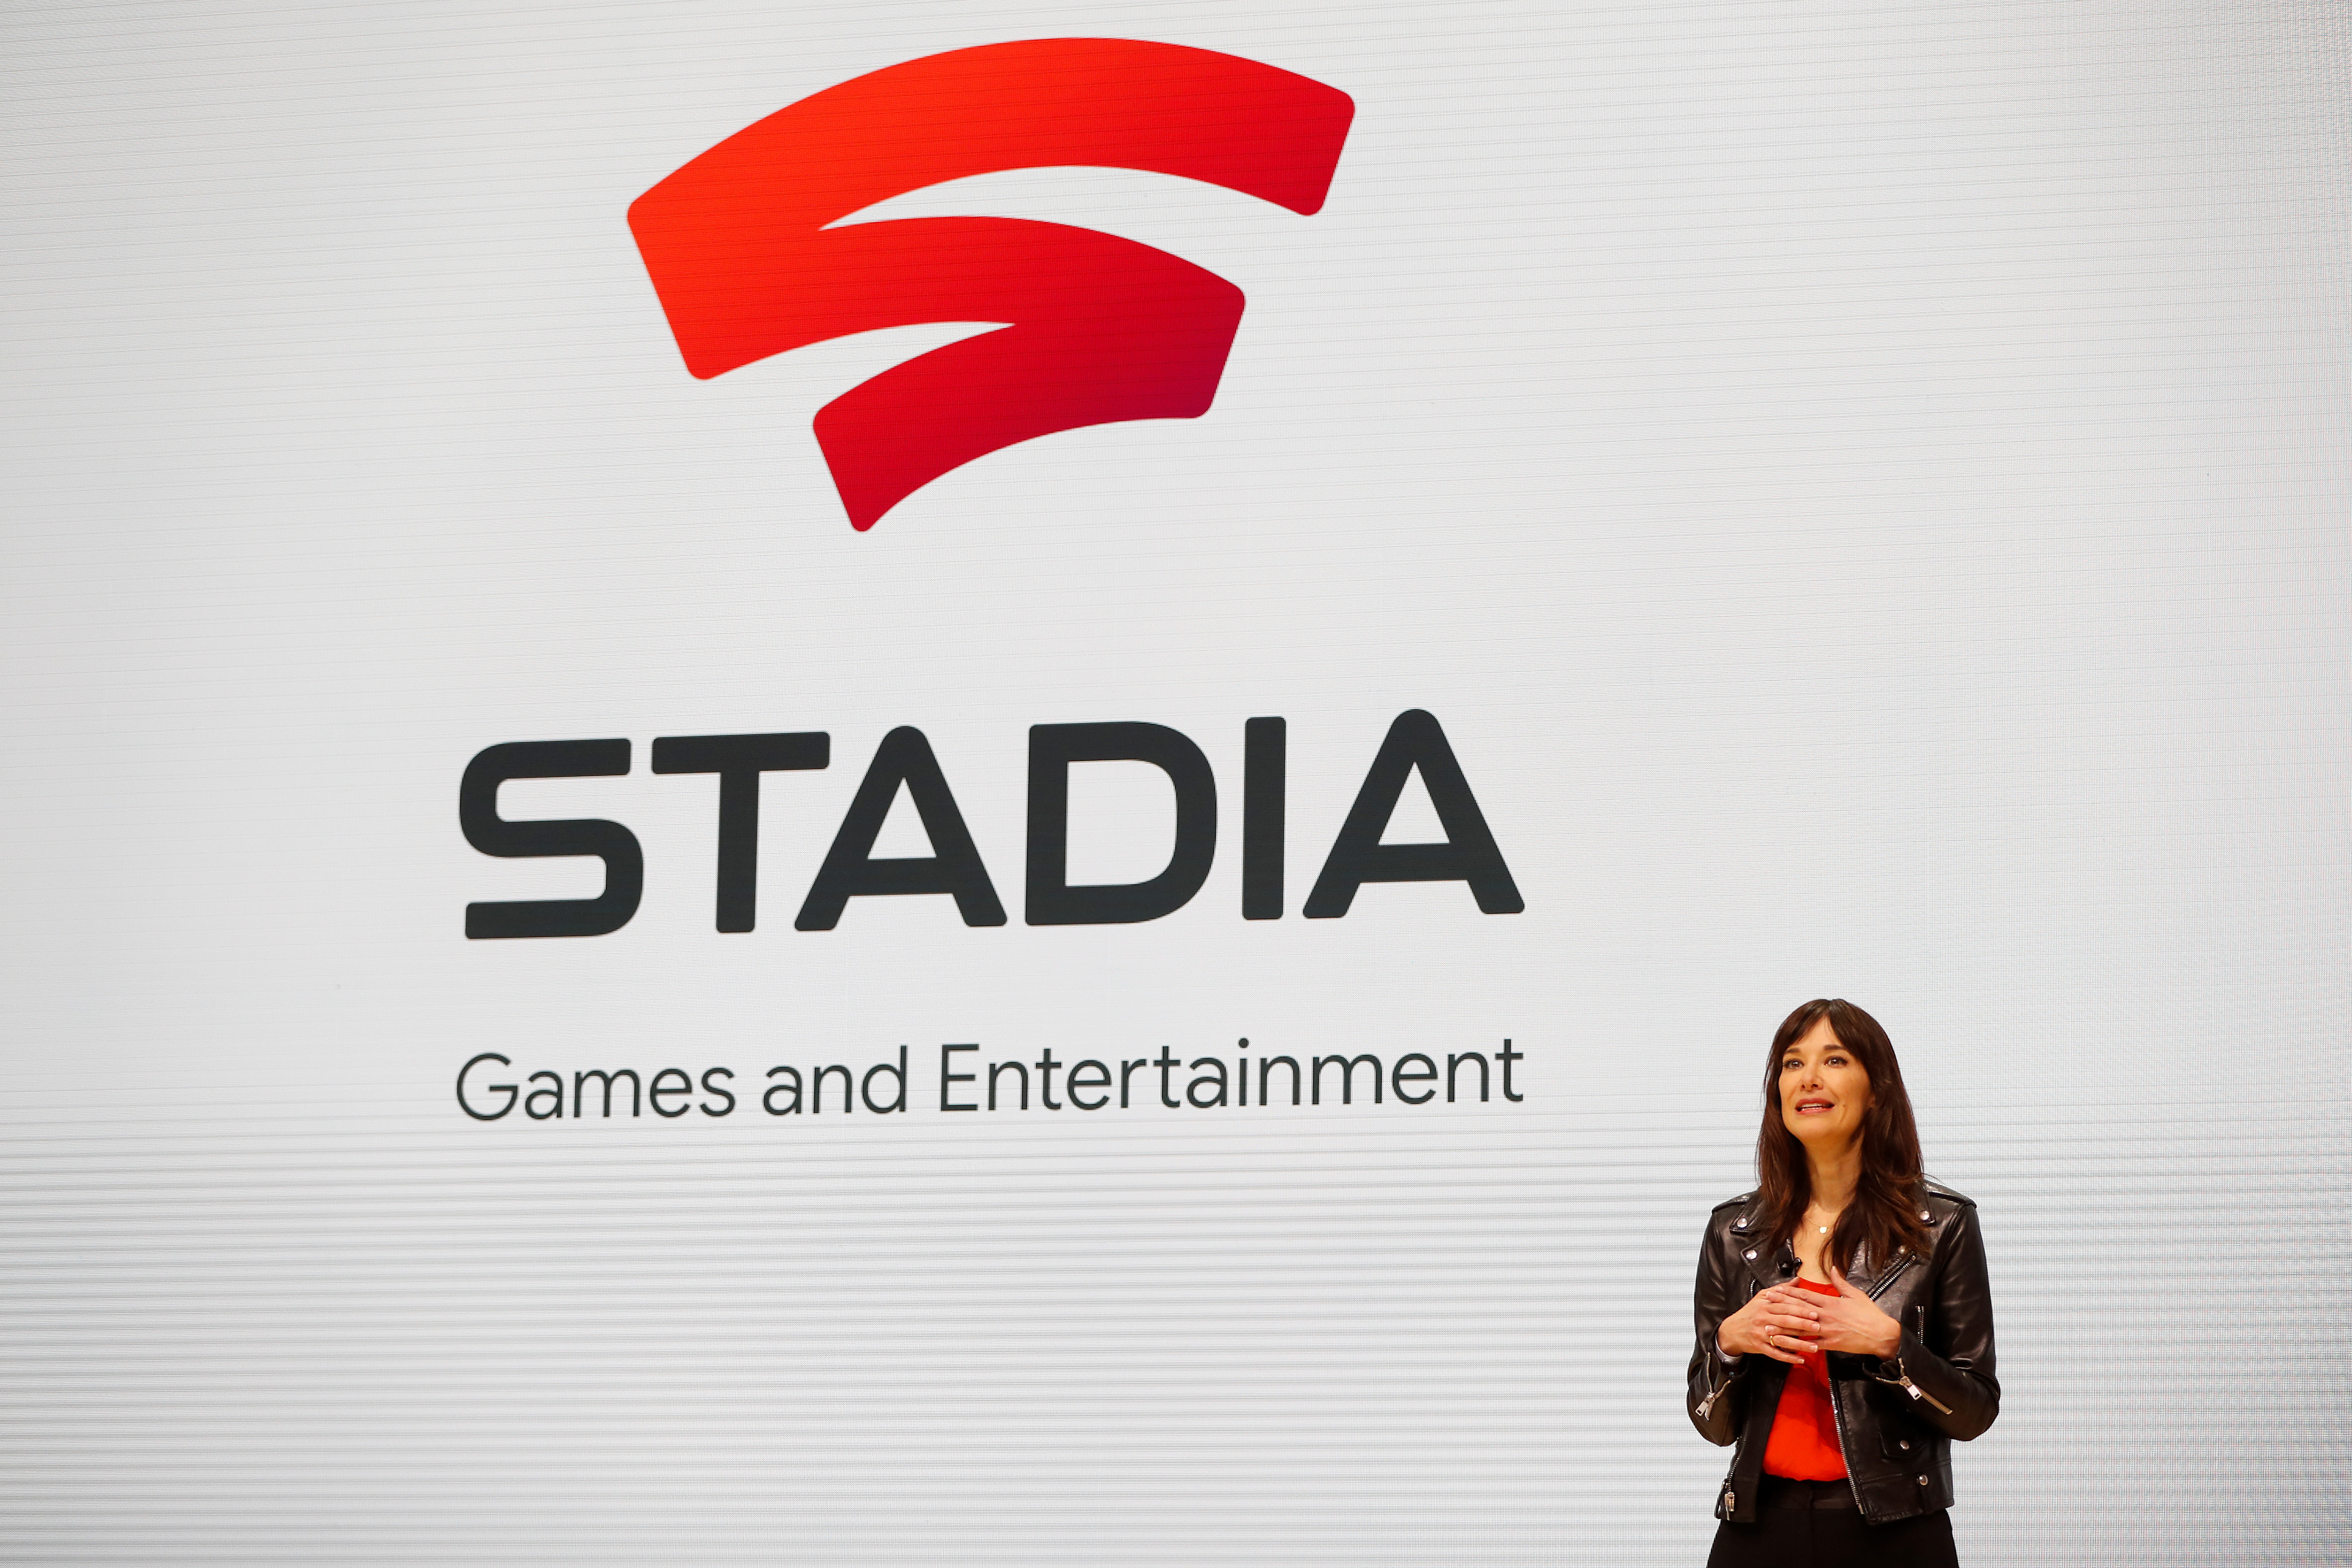 Jade Raymond, head of Google's Stadia Games and Entertainment, speaks on stage during a keynote address at the Game Developers Conference in San Francisco, California, U.S., March 19, 2019. REUTERS/Stephen Lam